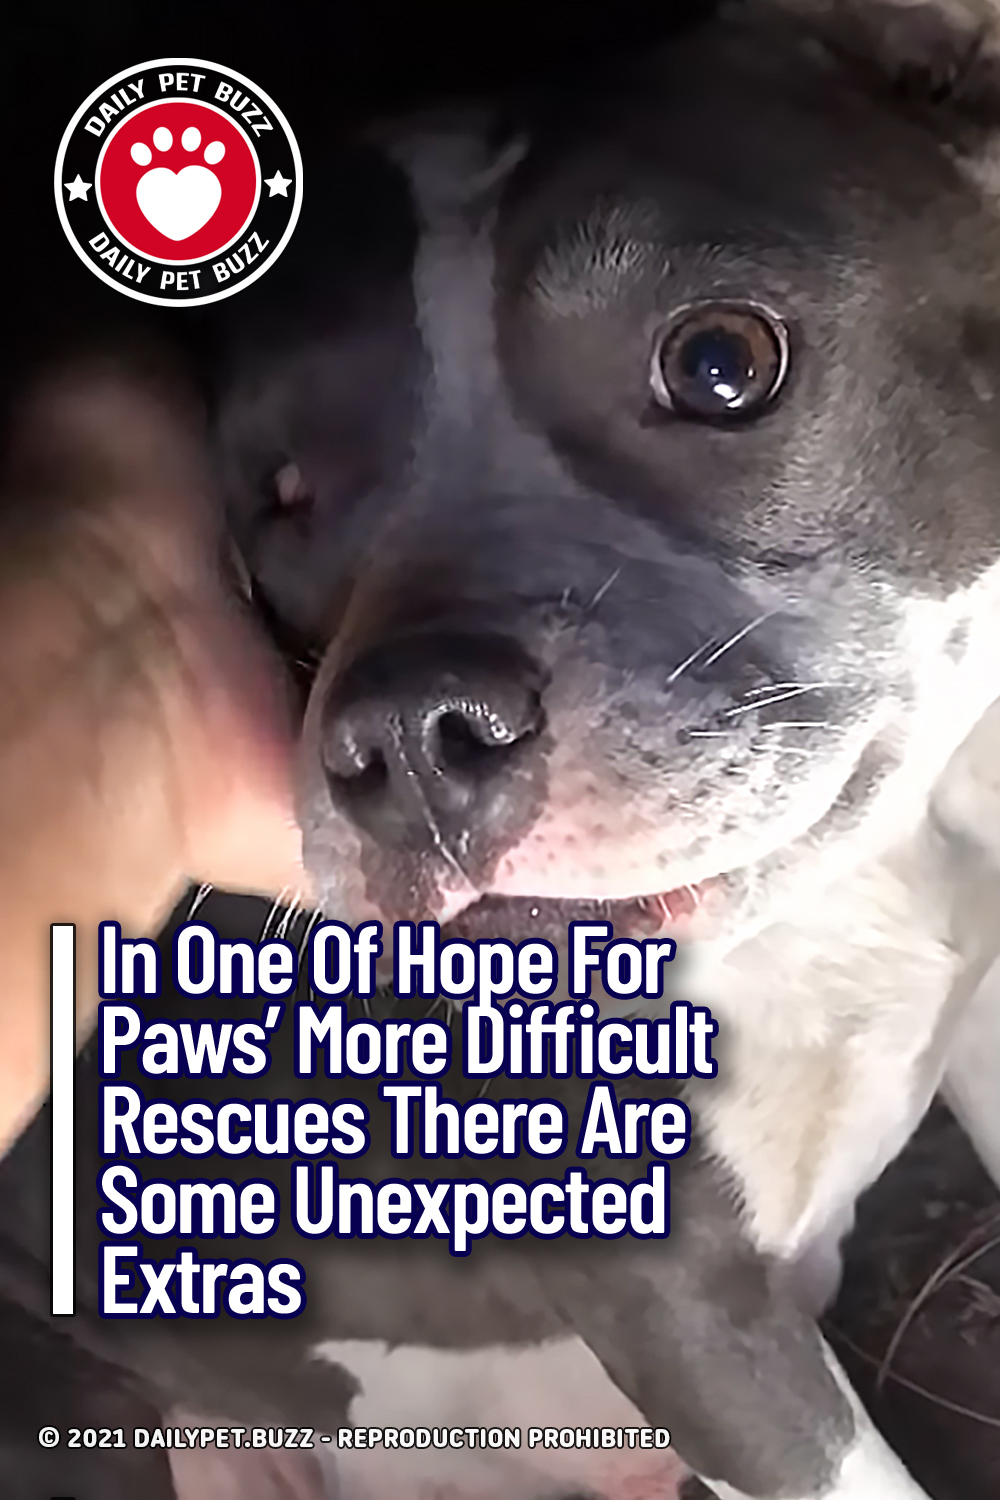 In One Of Hope For Paws\' More Difficult Rescues There Are Some Unexpected Extras